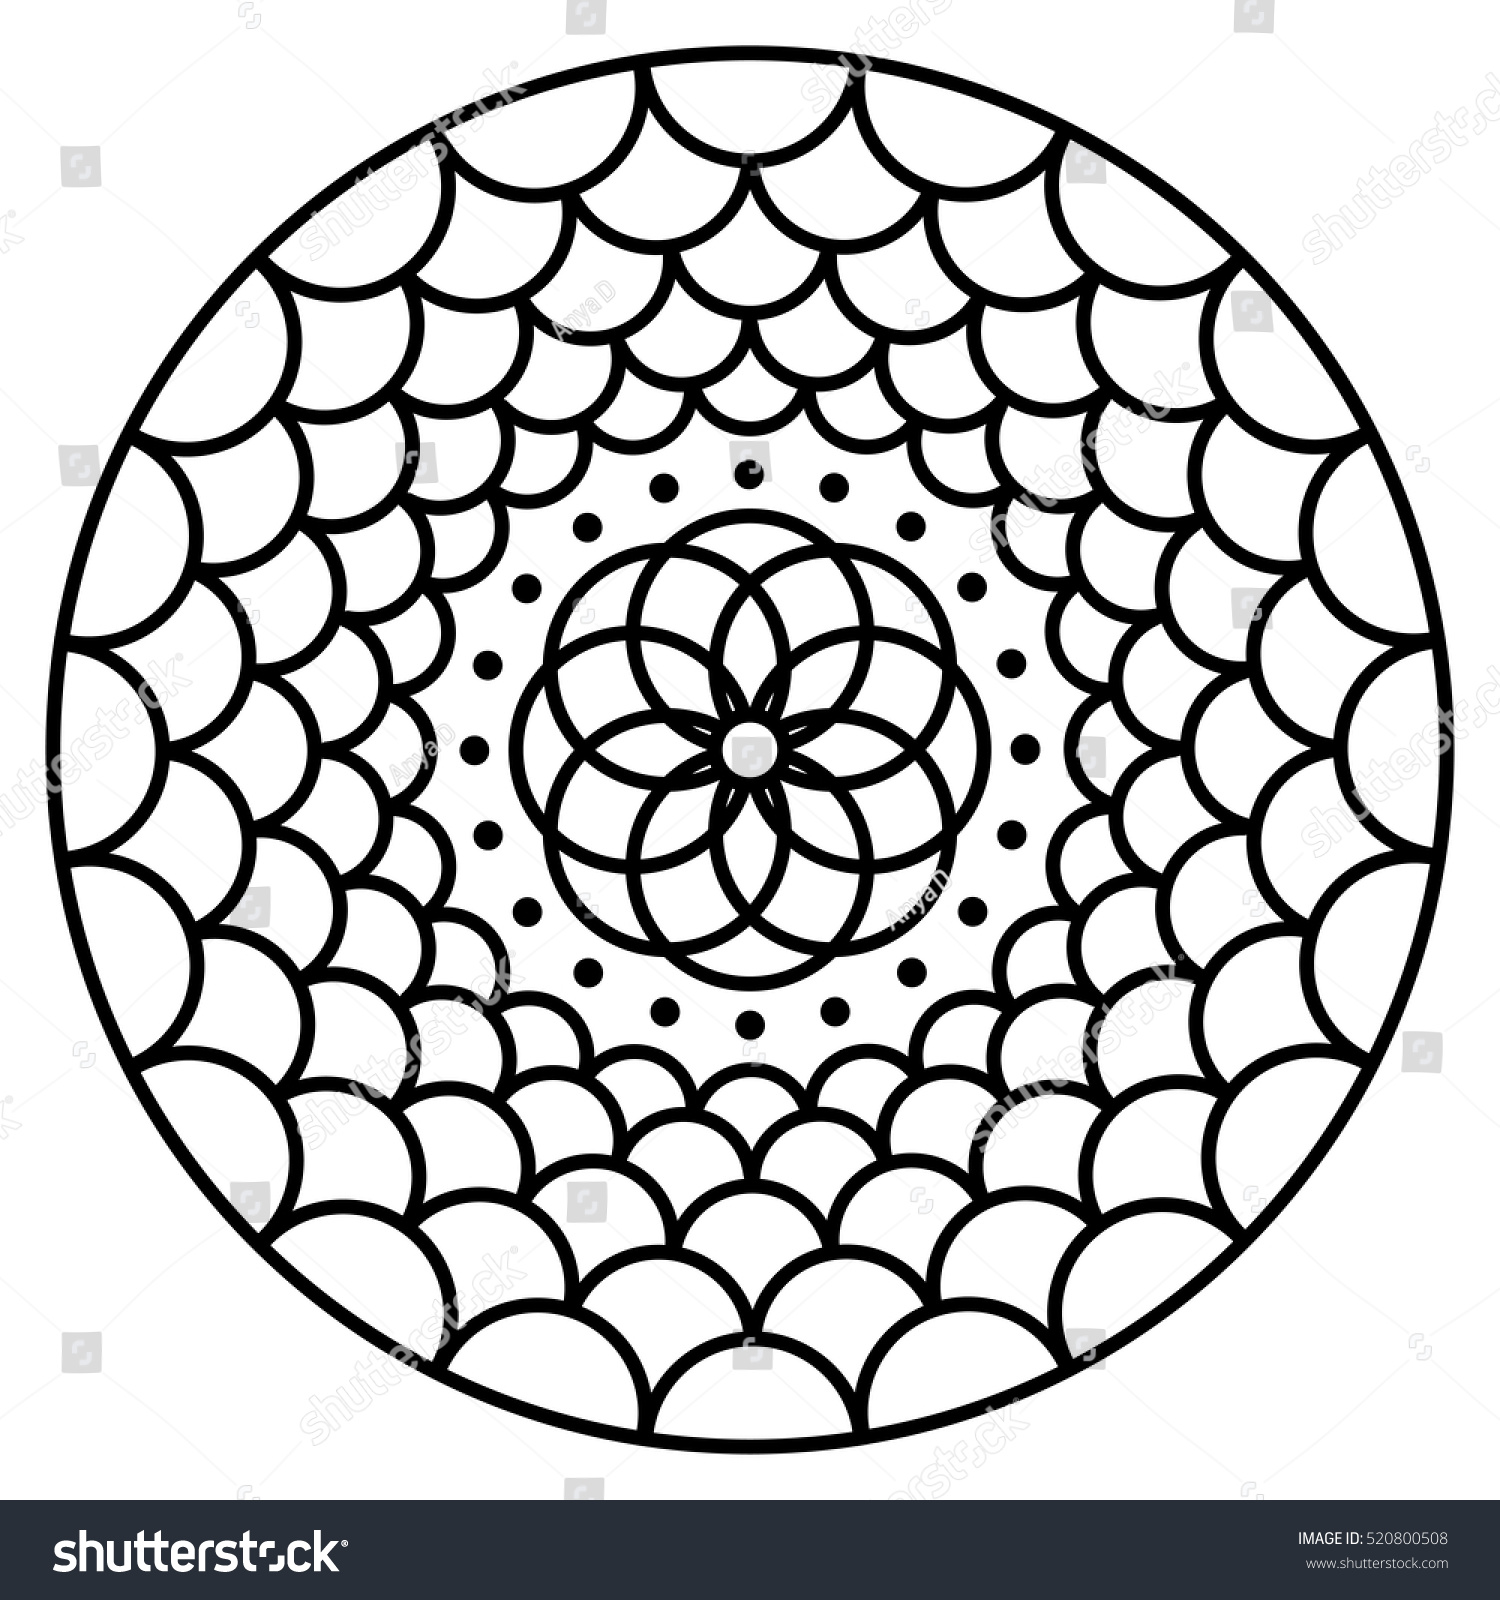 Simple flower mandala pattern for coloring book pages easy floral design to color for kids